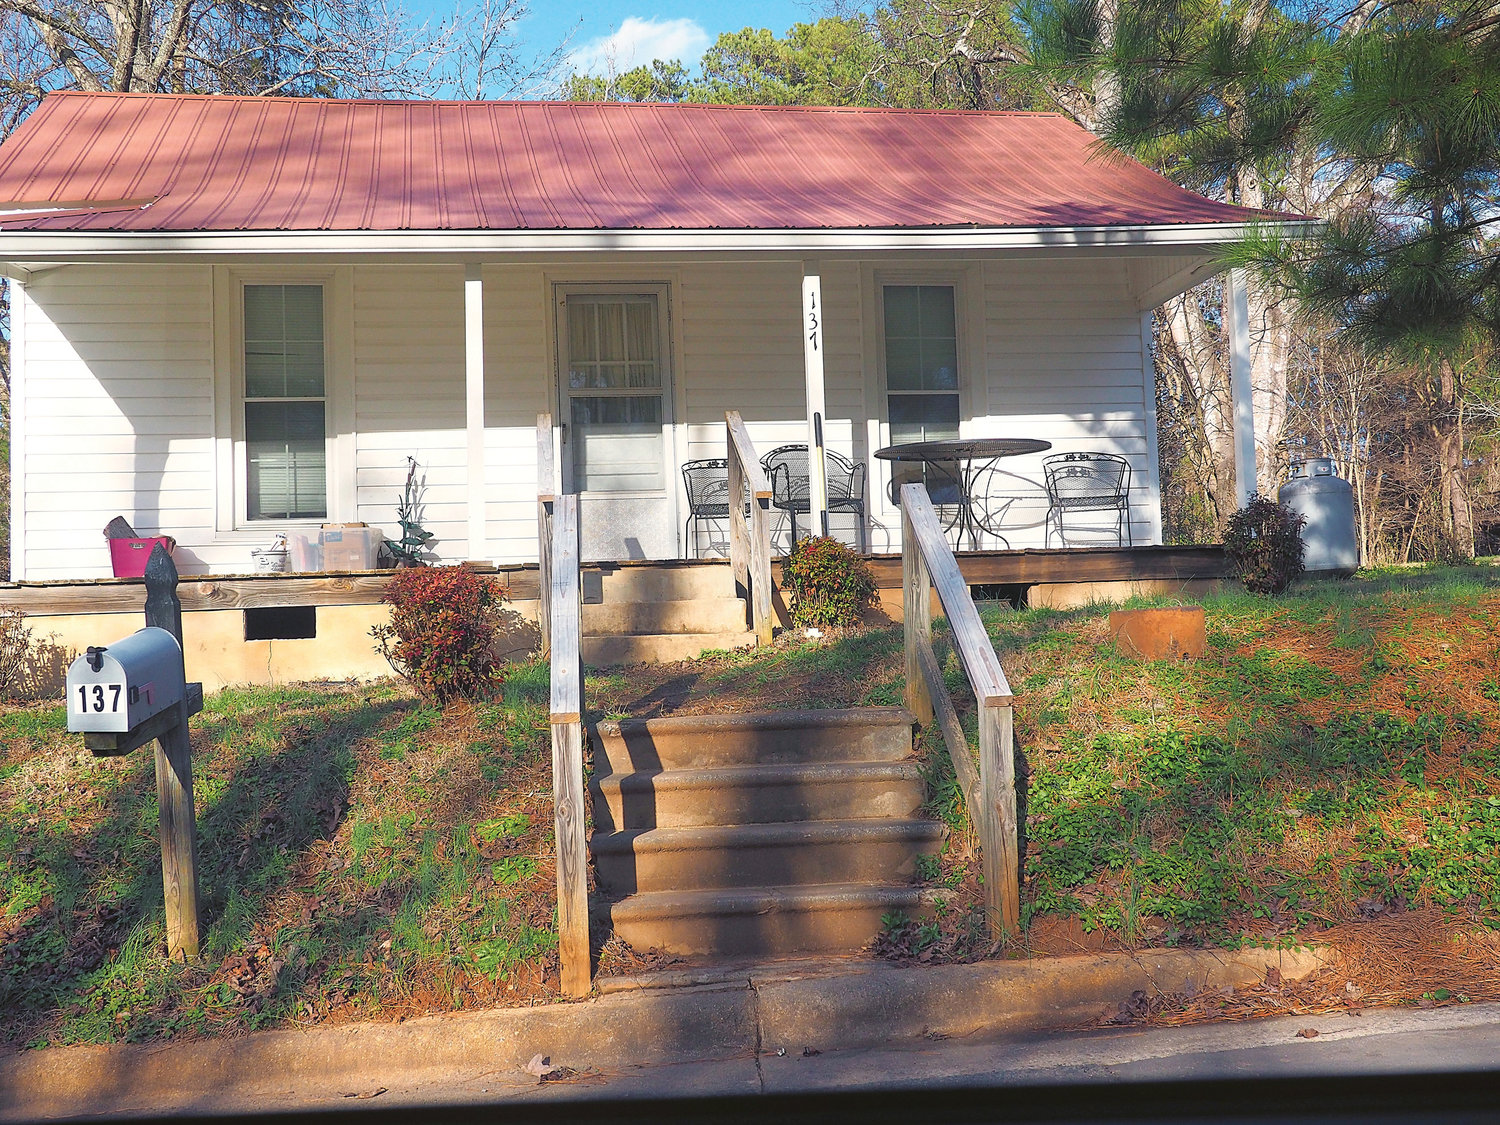 This rental home is located on Toomer Loop in Pittsboro. Habitat for Humanity is also building a community on this street.